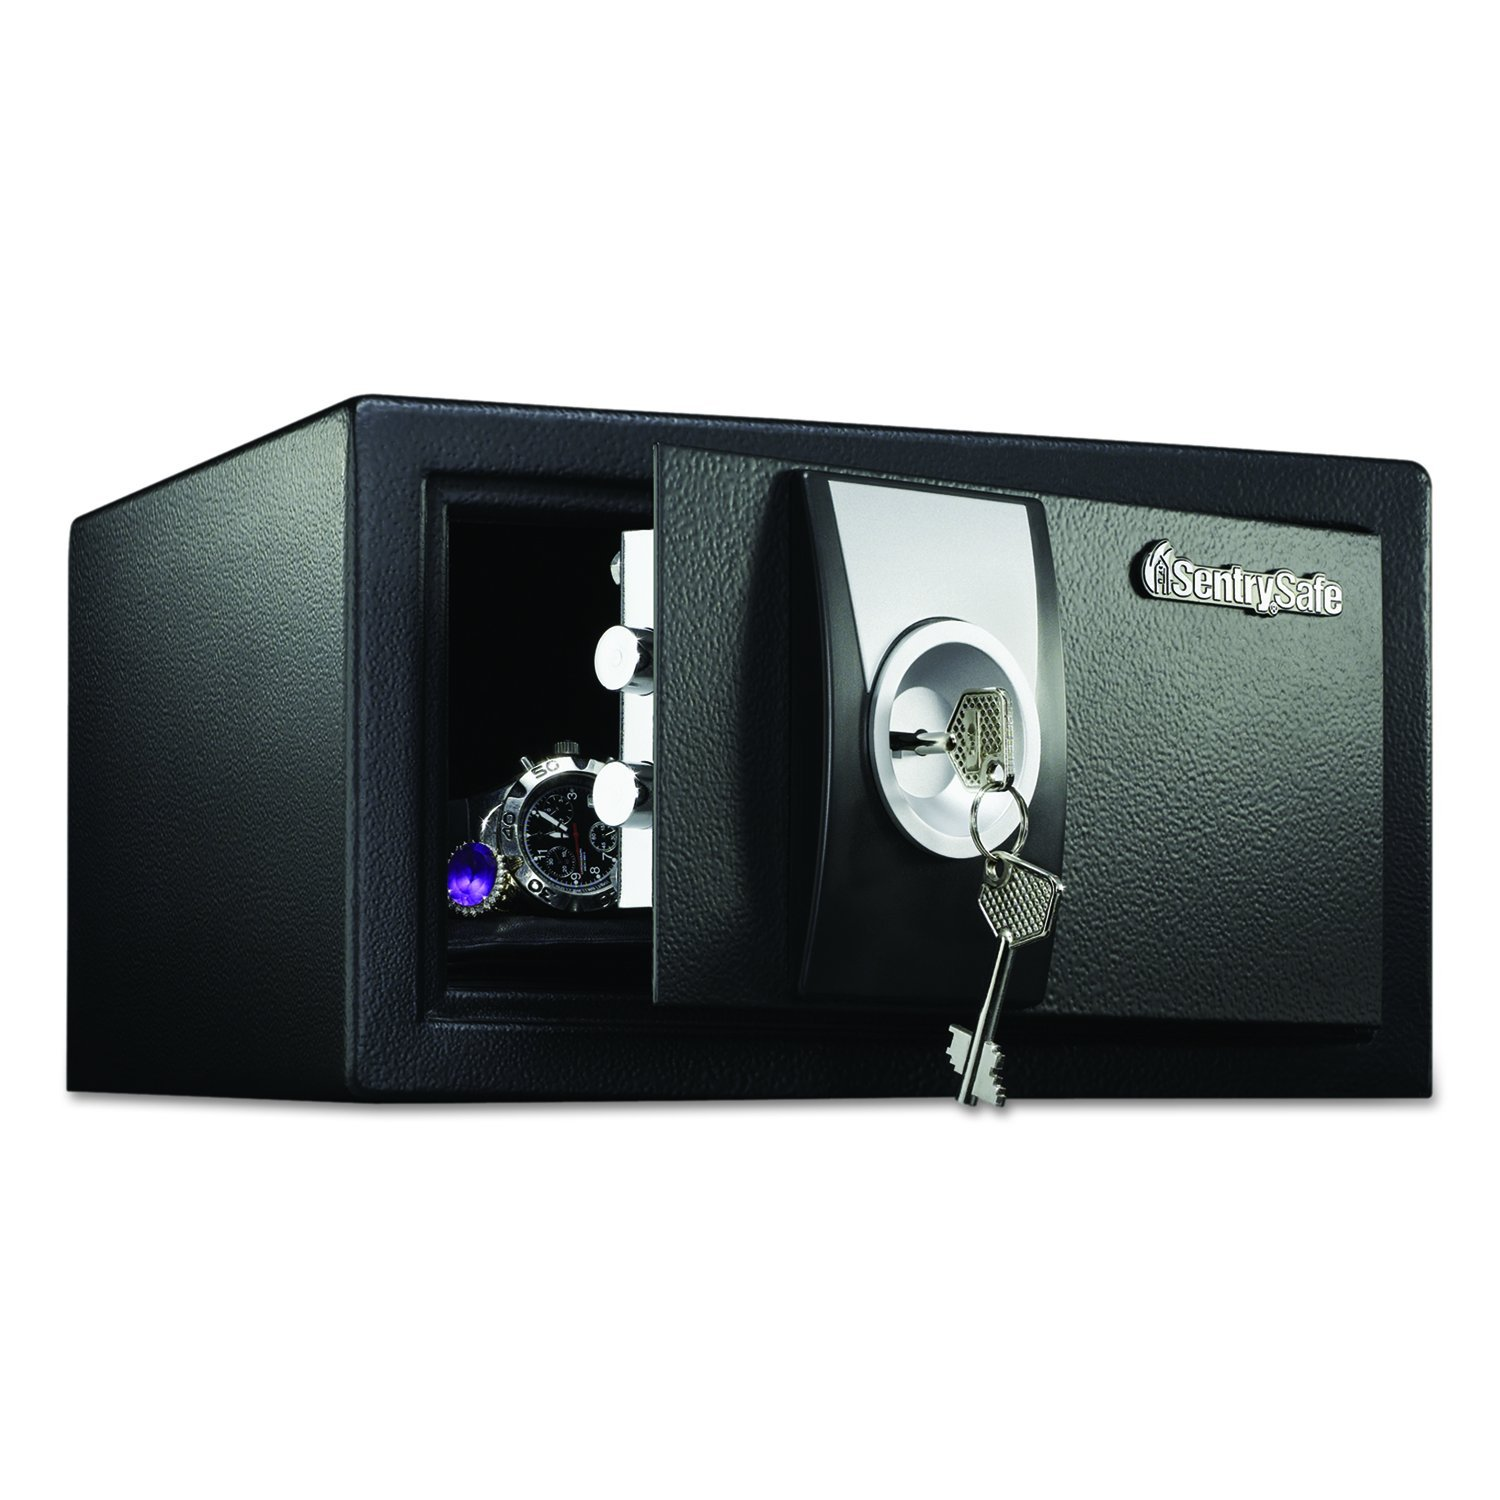 this image of Sentry Safe X031 Security Safe should tell you whether its the right model for you